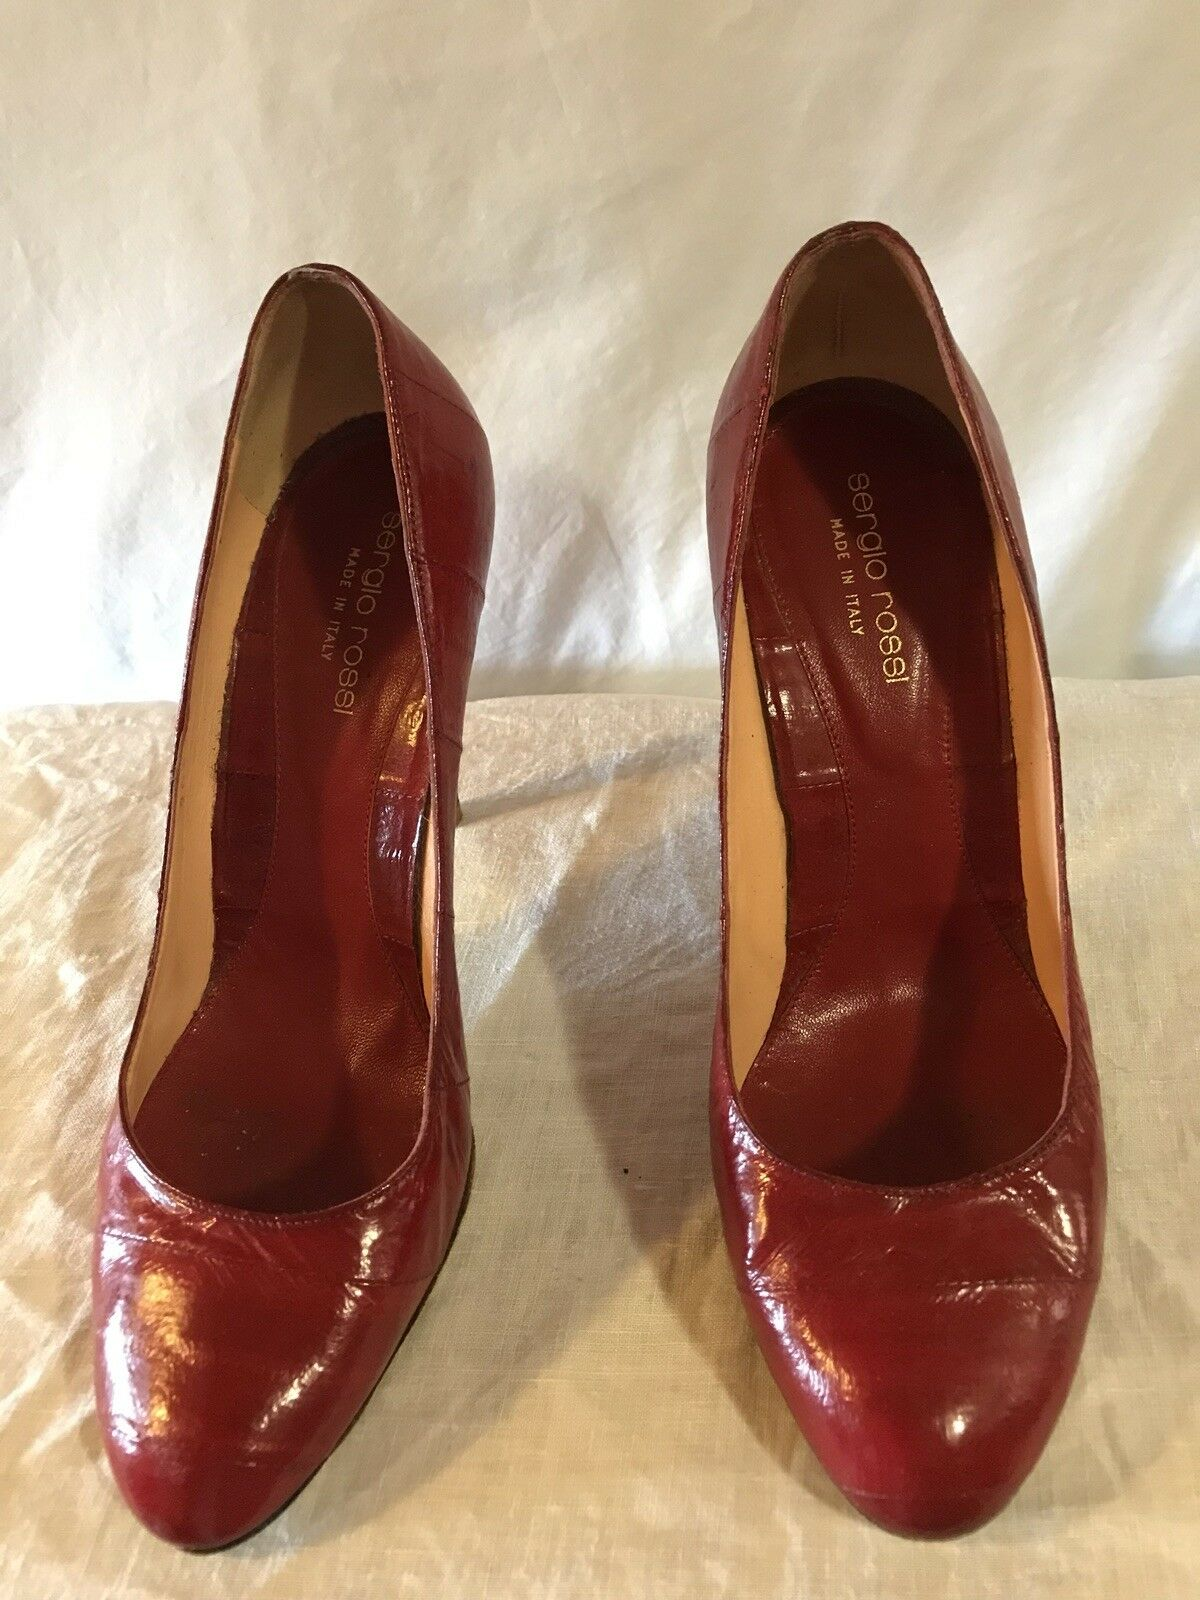 Vintage Sergio Rossi Women's shoes Heels Pumps Size 37.5 Made in